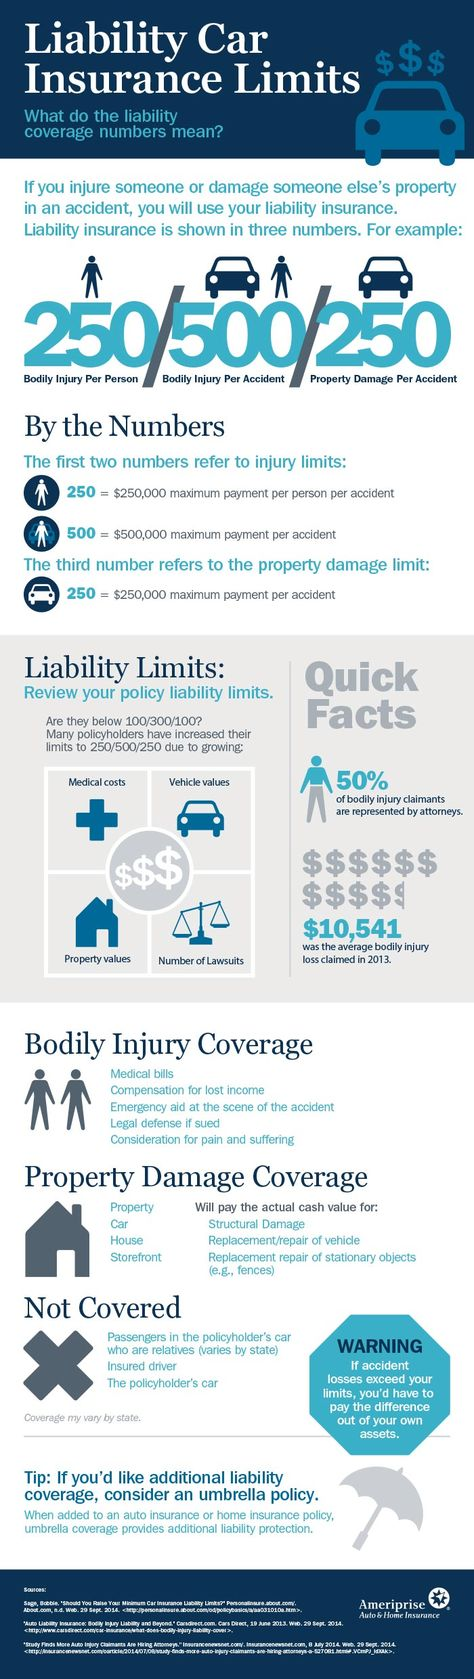 Insurance Small Business On Infographic Umbrella Insurance Policy Car Insurance Umbrella Insurance Insurance Marketing